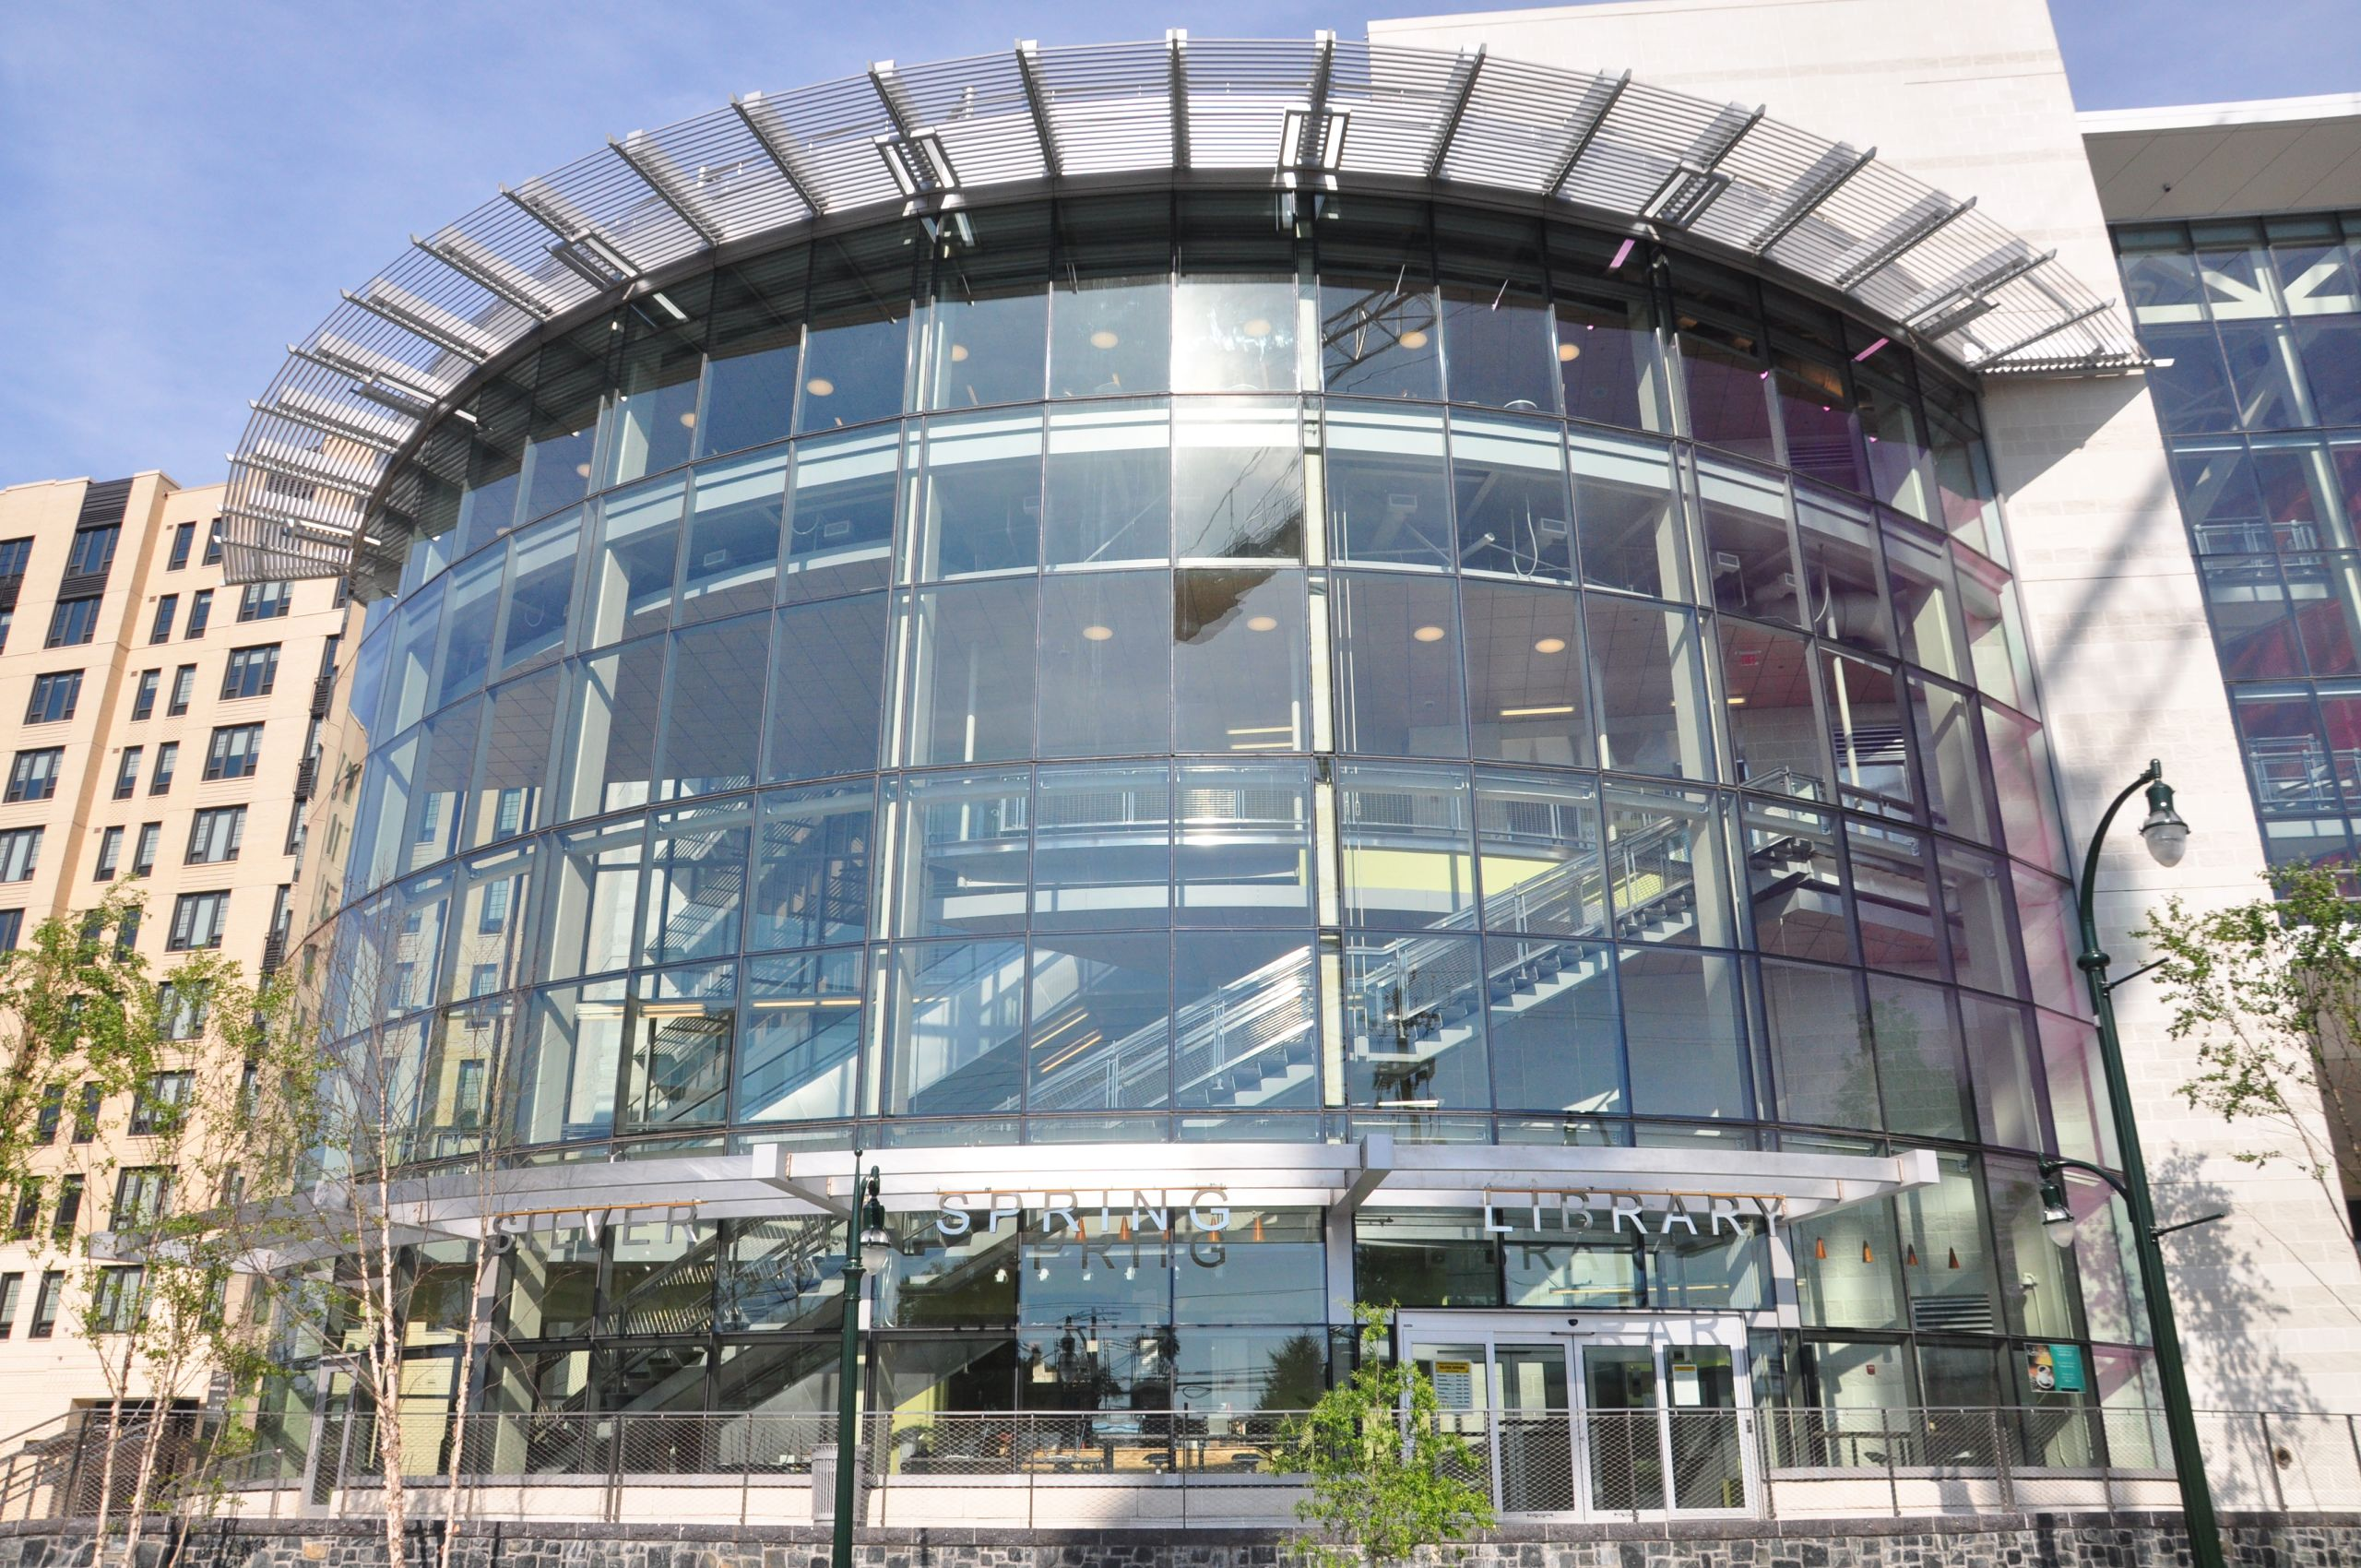 The new Silver Spring Library